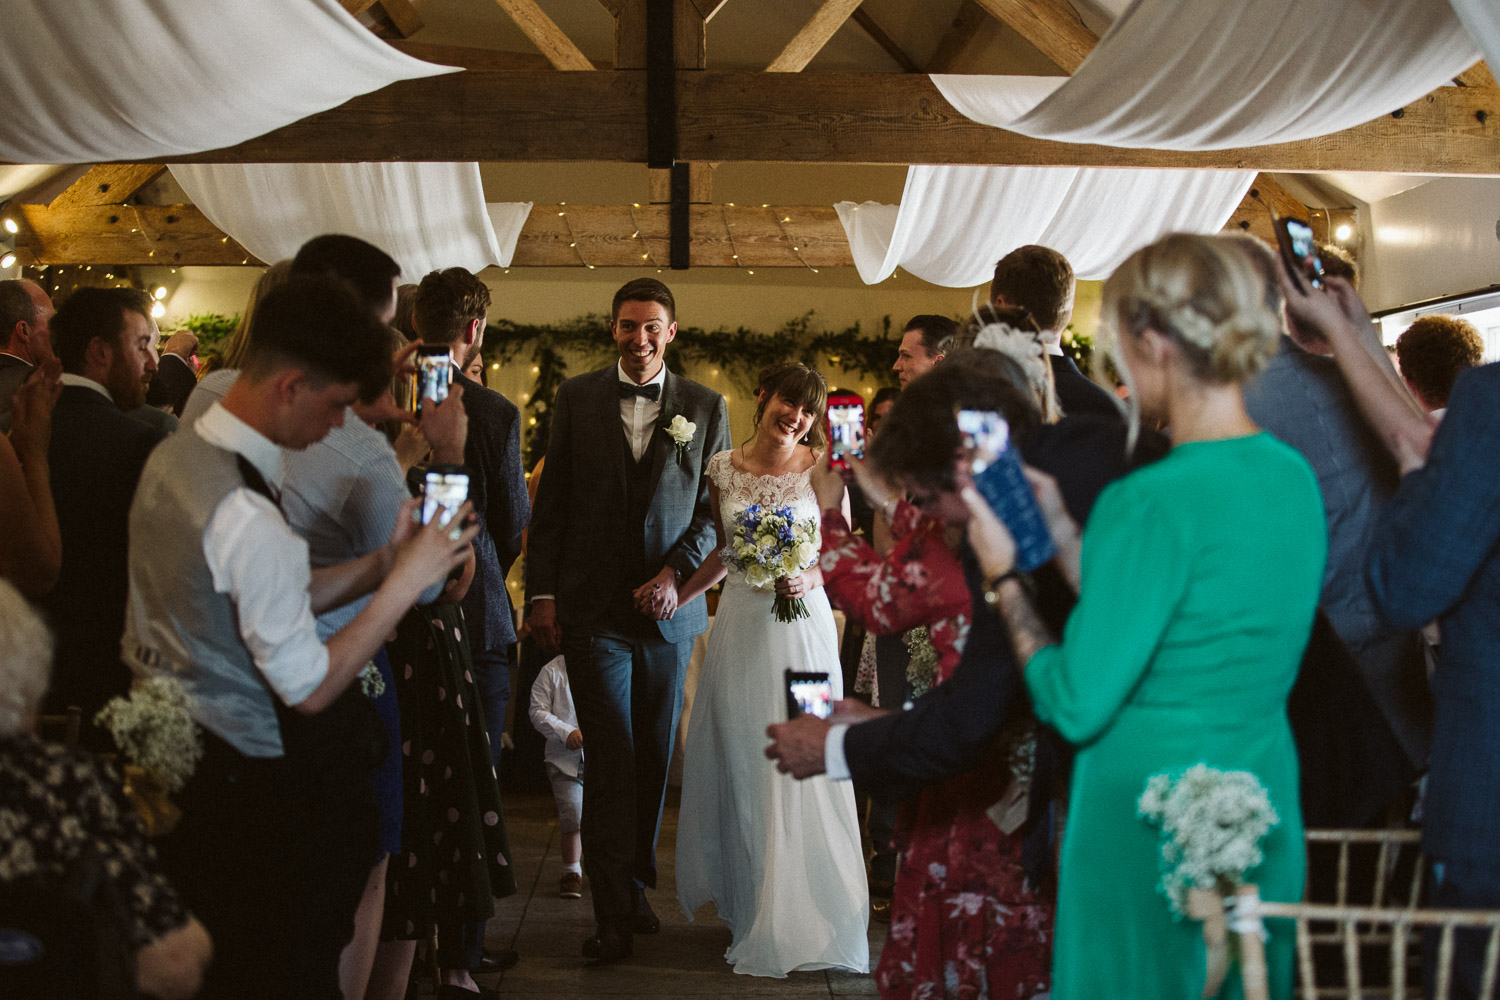 newlyweds walking out of ceremony room lots by mobile phones